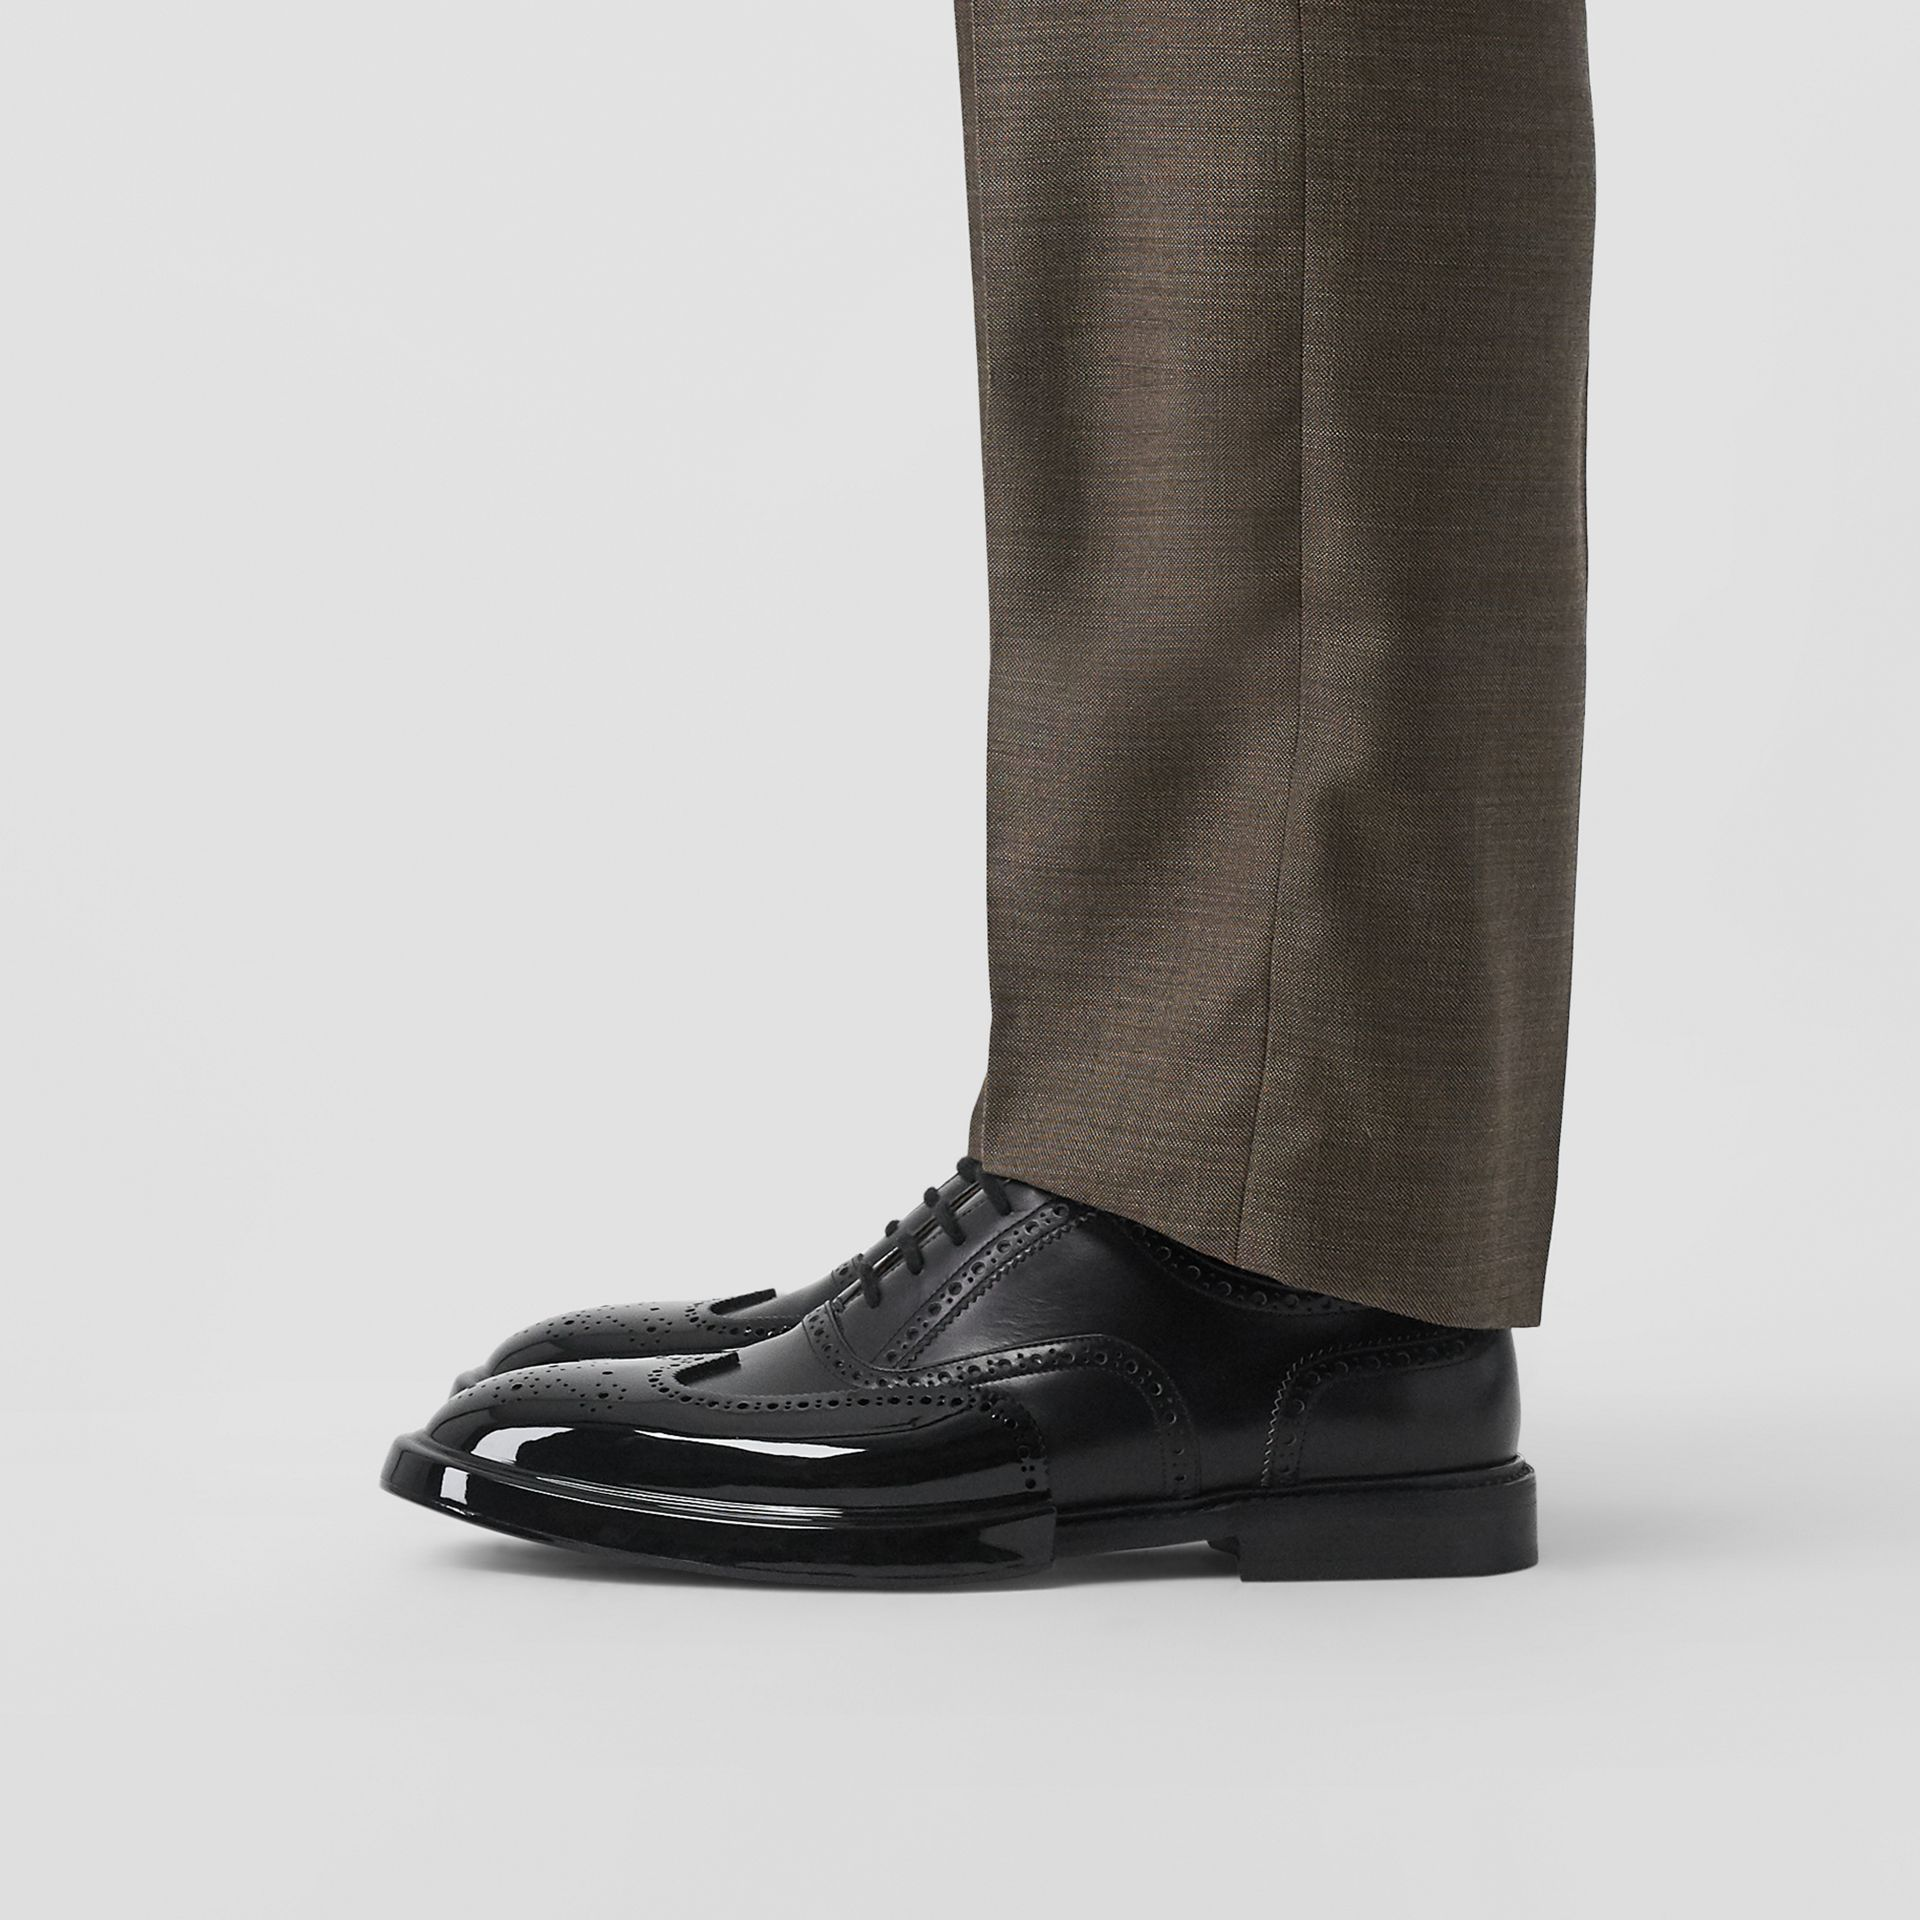 Toe Cap Detail Leather Oxford Brogues in Black - Men | Burberry Hong Kong S.A.R - gallery image 2